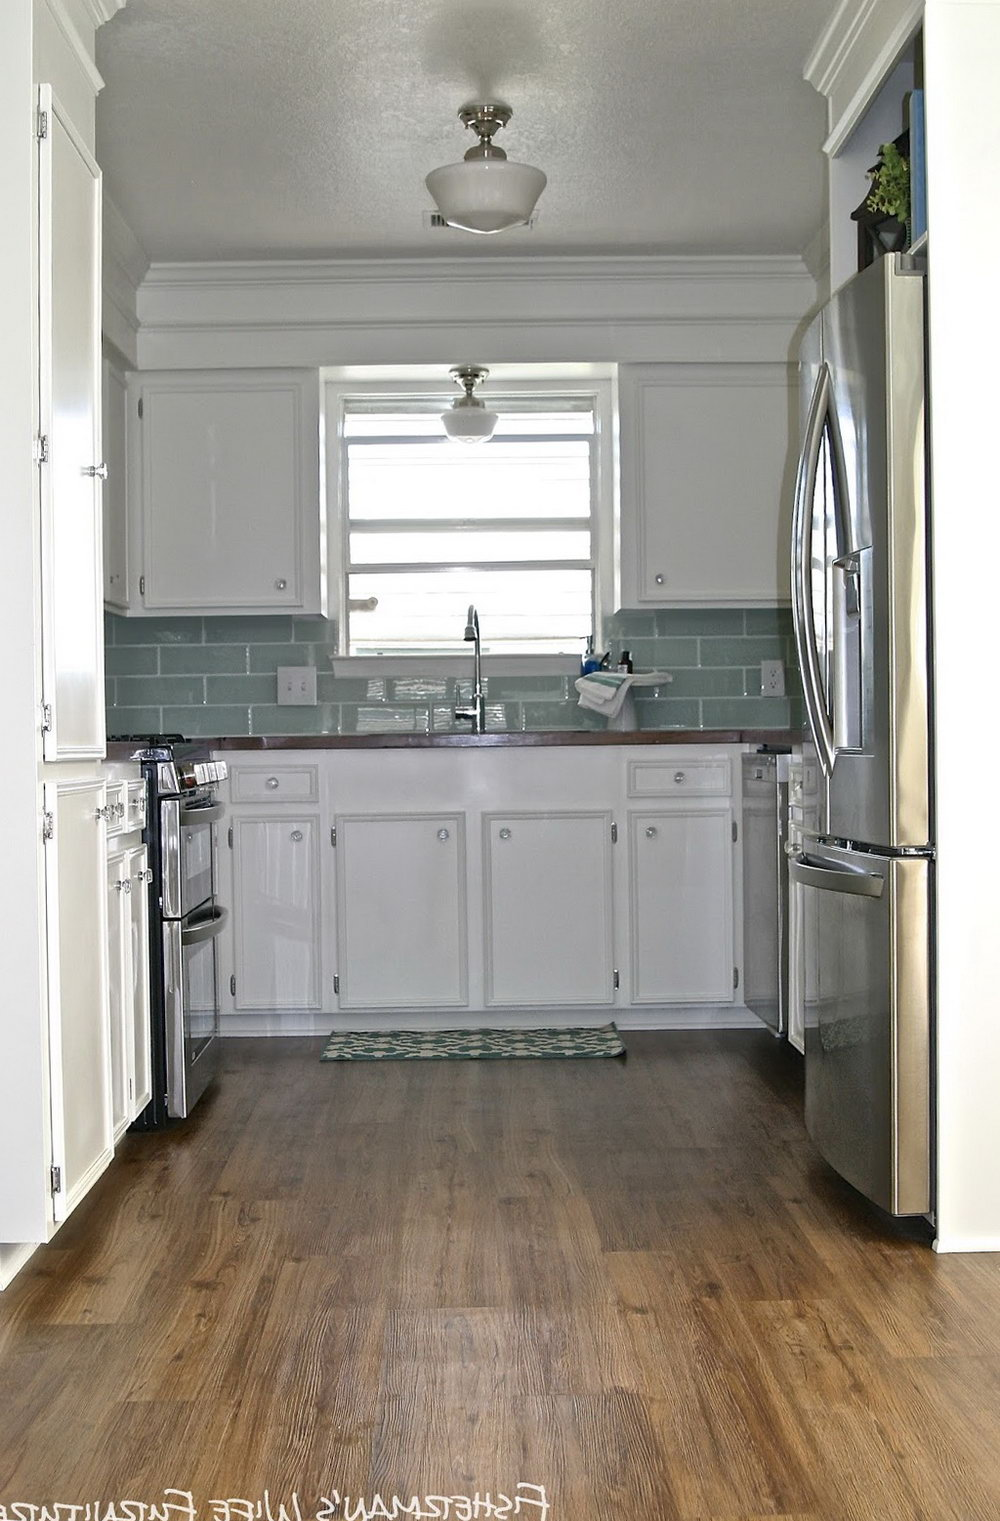 Pictures Of Small Kitchens With White Cabinets